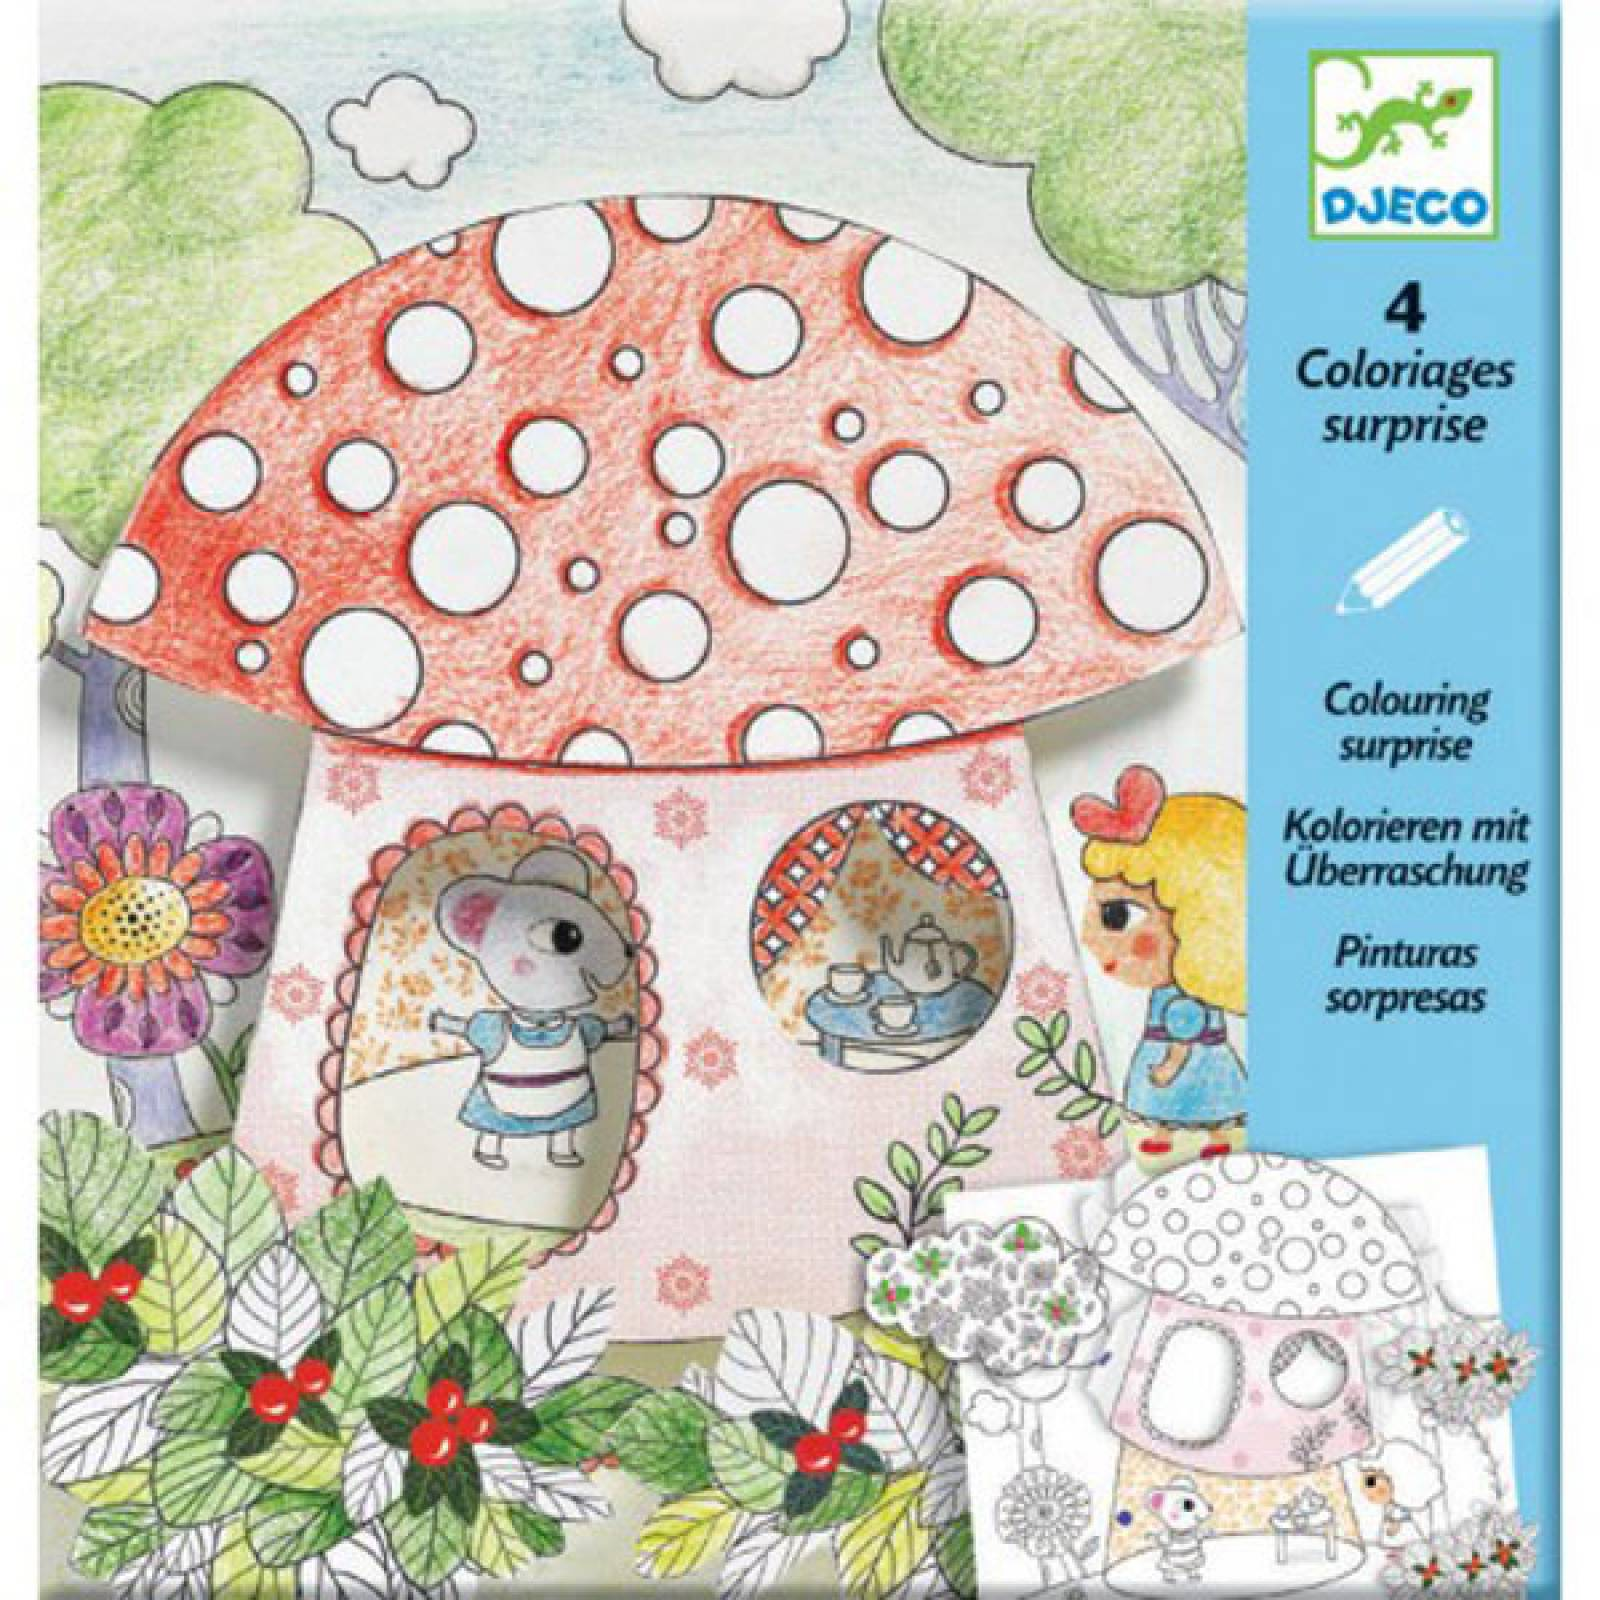 Thumbelina Colouring Surprise By Djeco 6-9yrs thumbnails